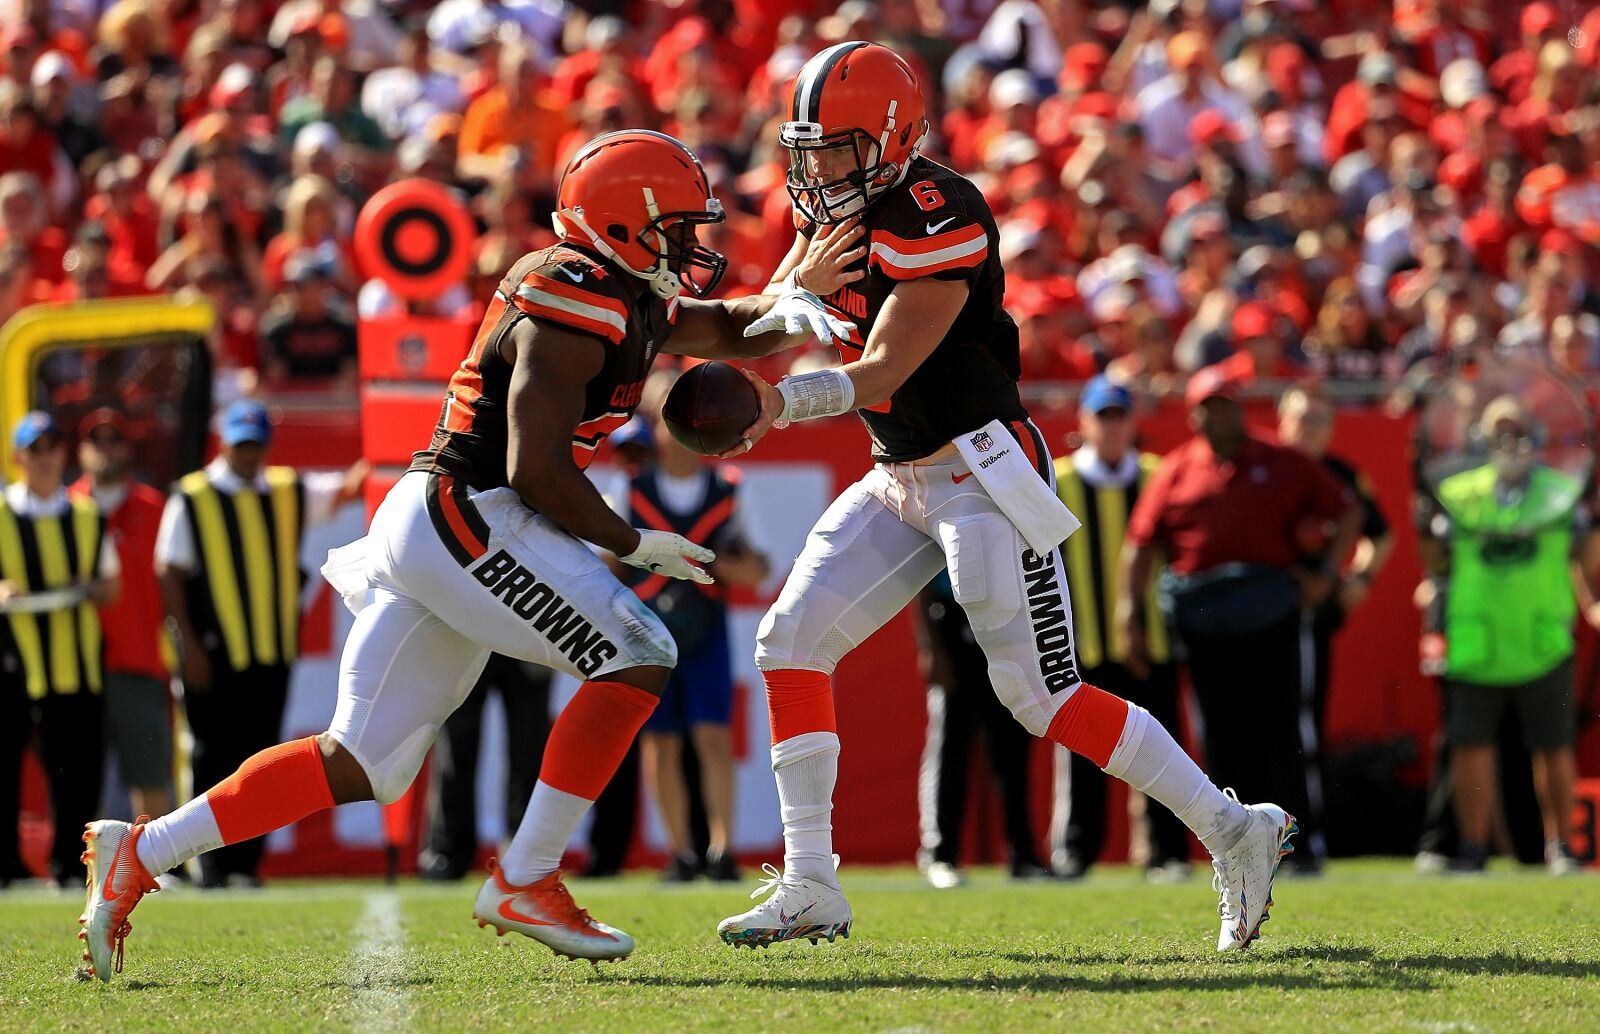 Cleveland Browns: How did running back Nick Chubb look in